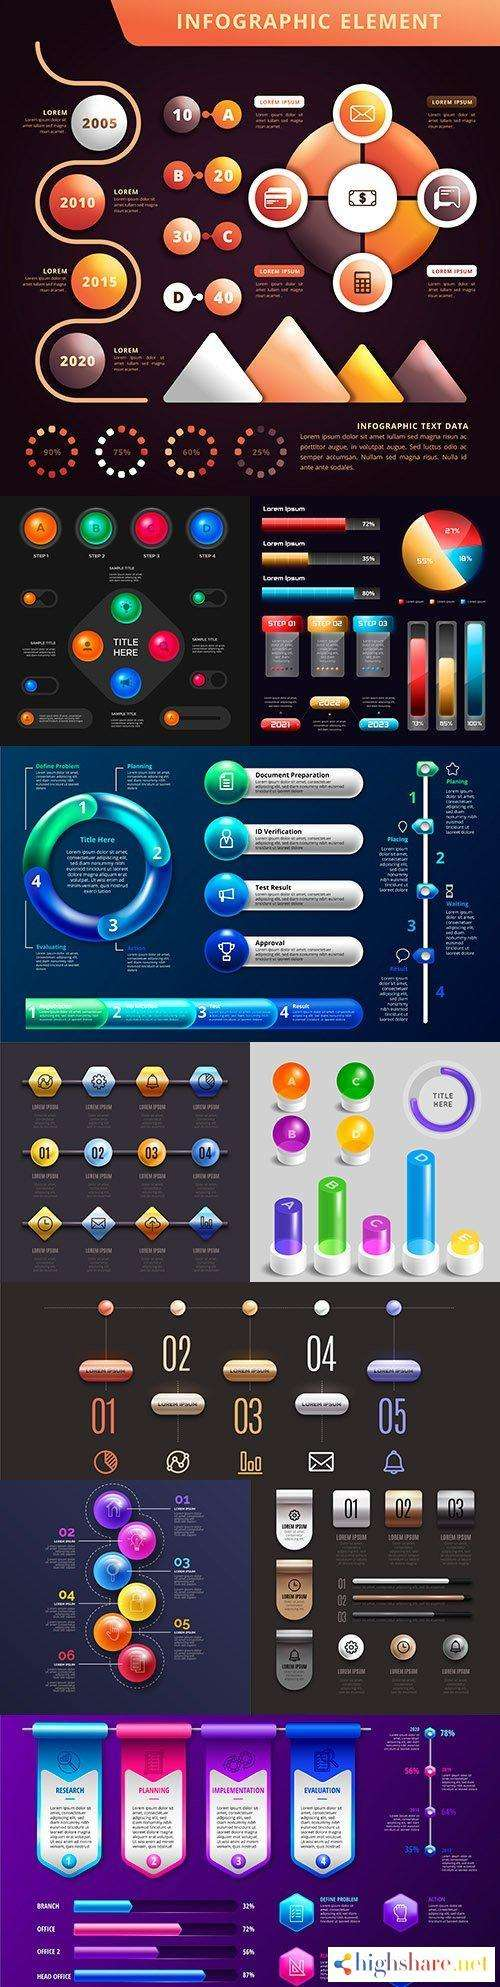 business infographics 3d glossy design collection 7 5f41d6e694a20 - Business infographics 3d glossy design collection 7